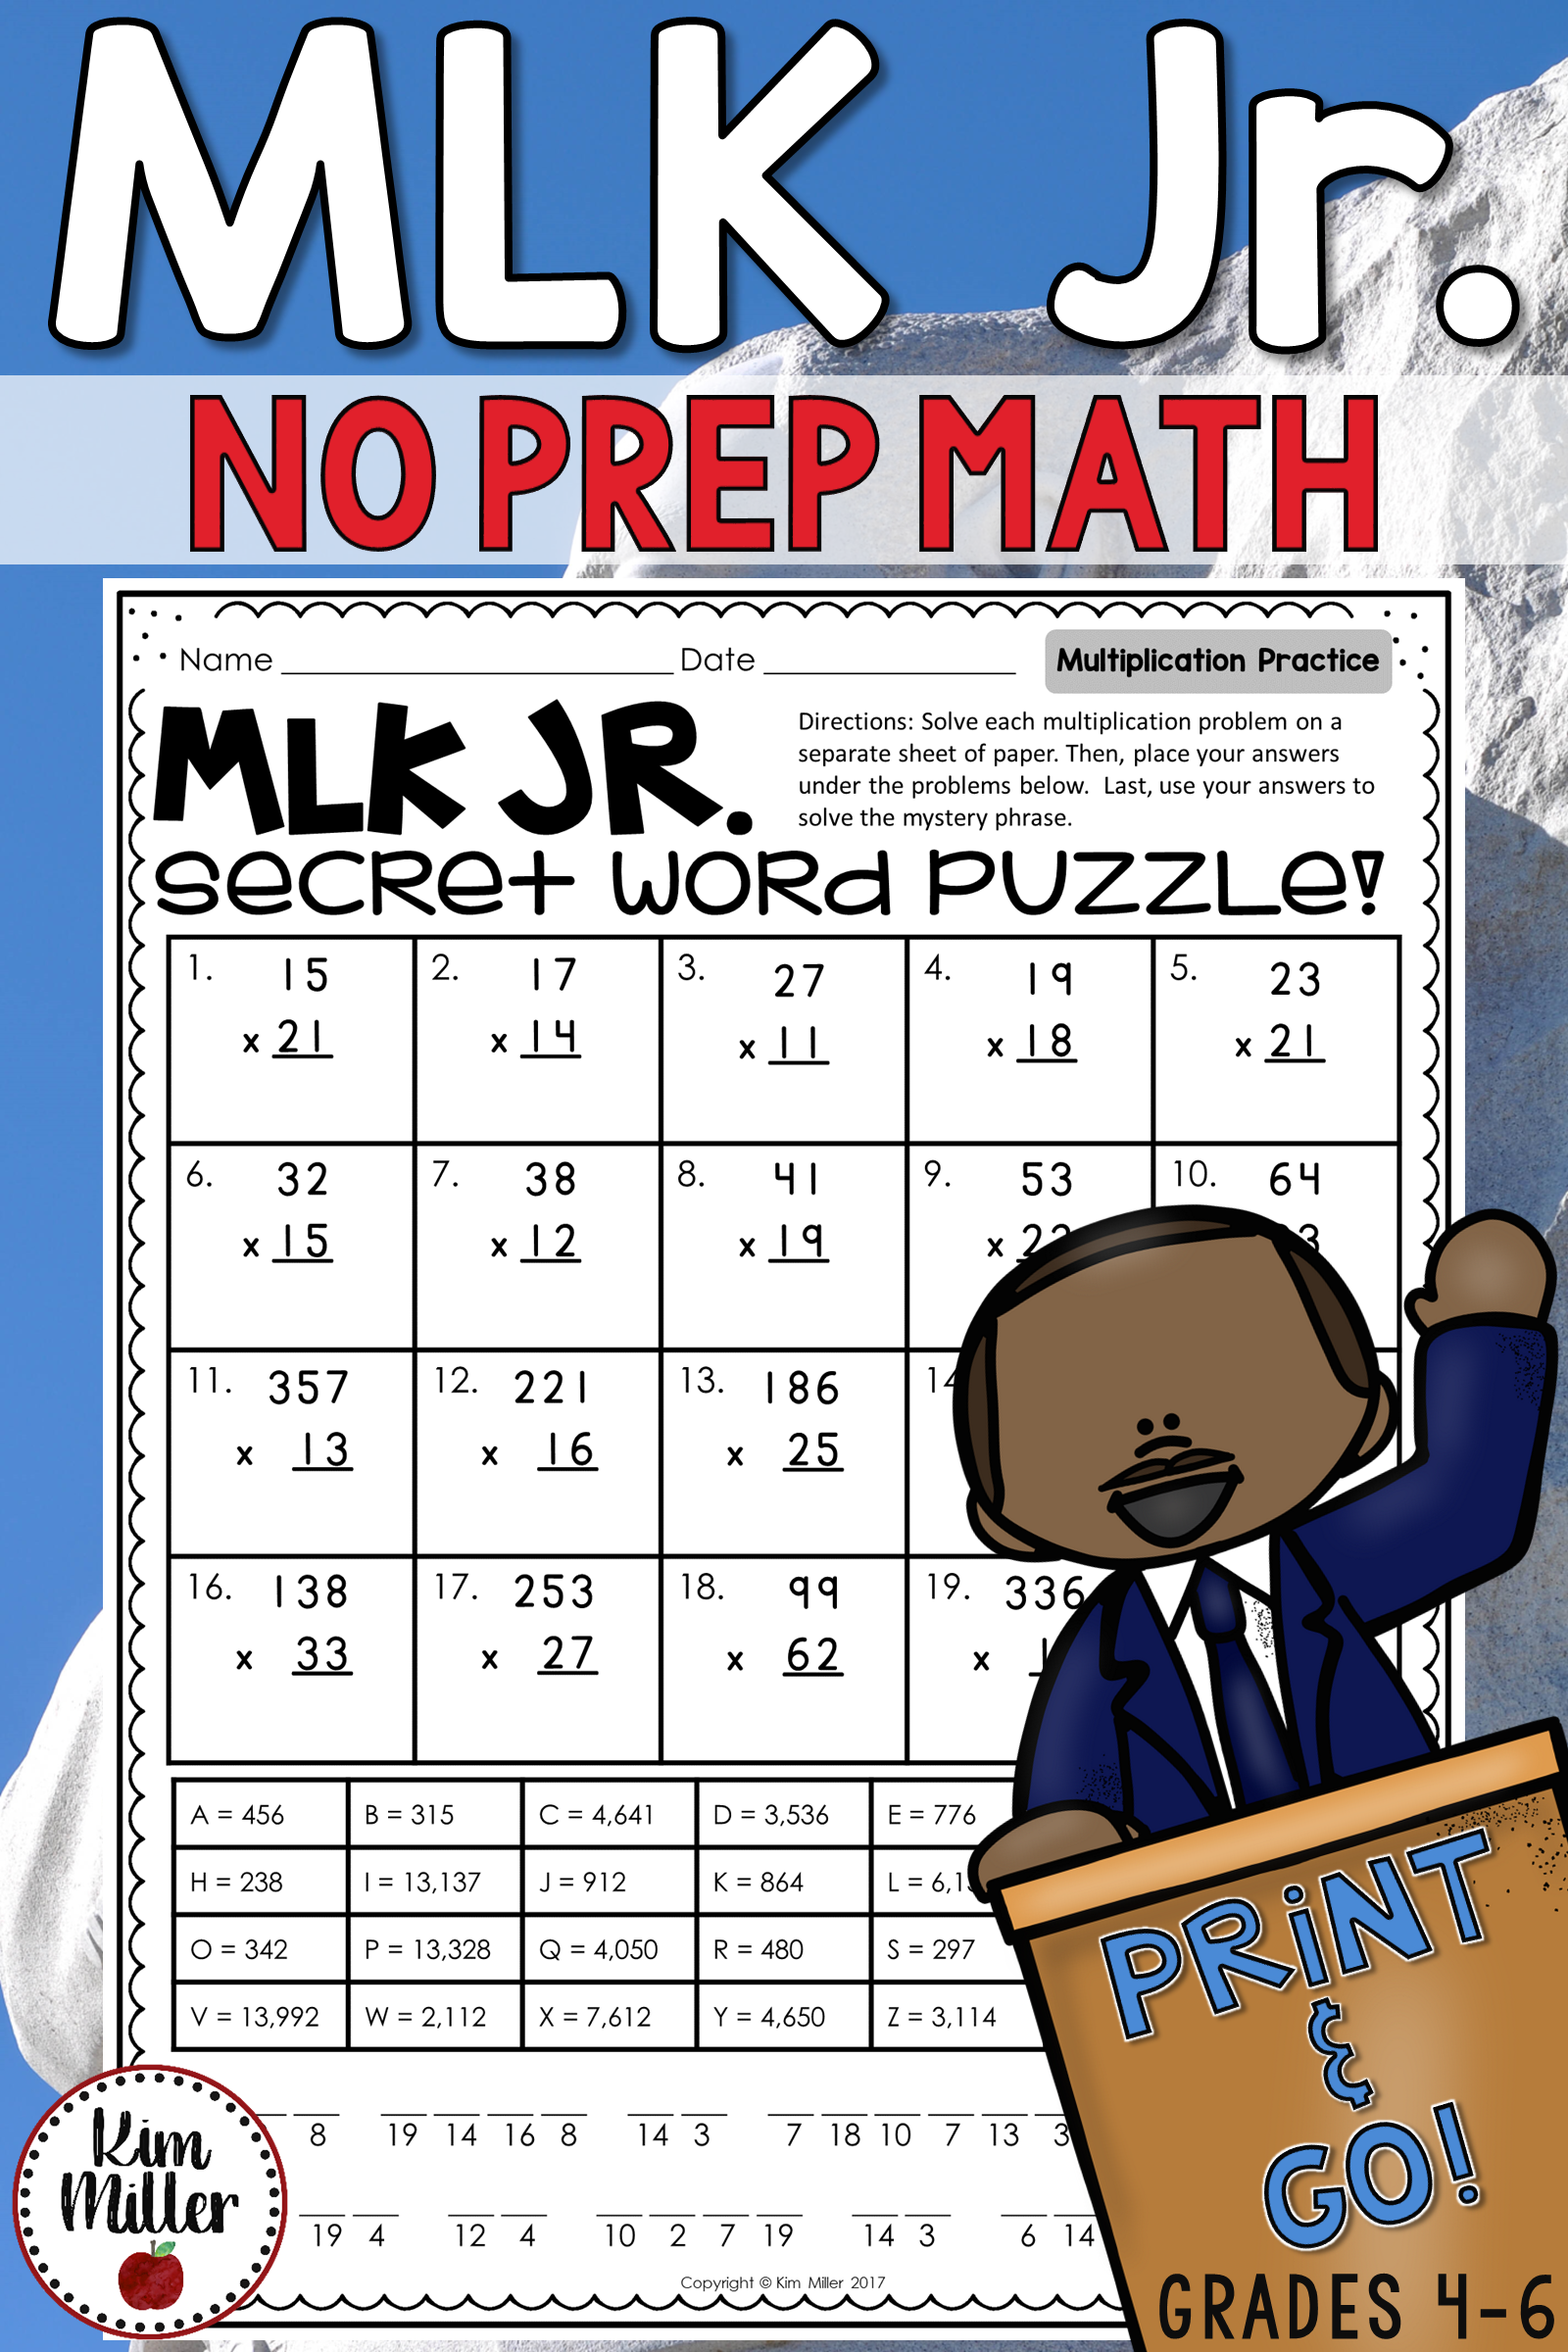 Martin Luther King Jr No Prep Math Worksheets